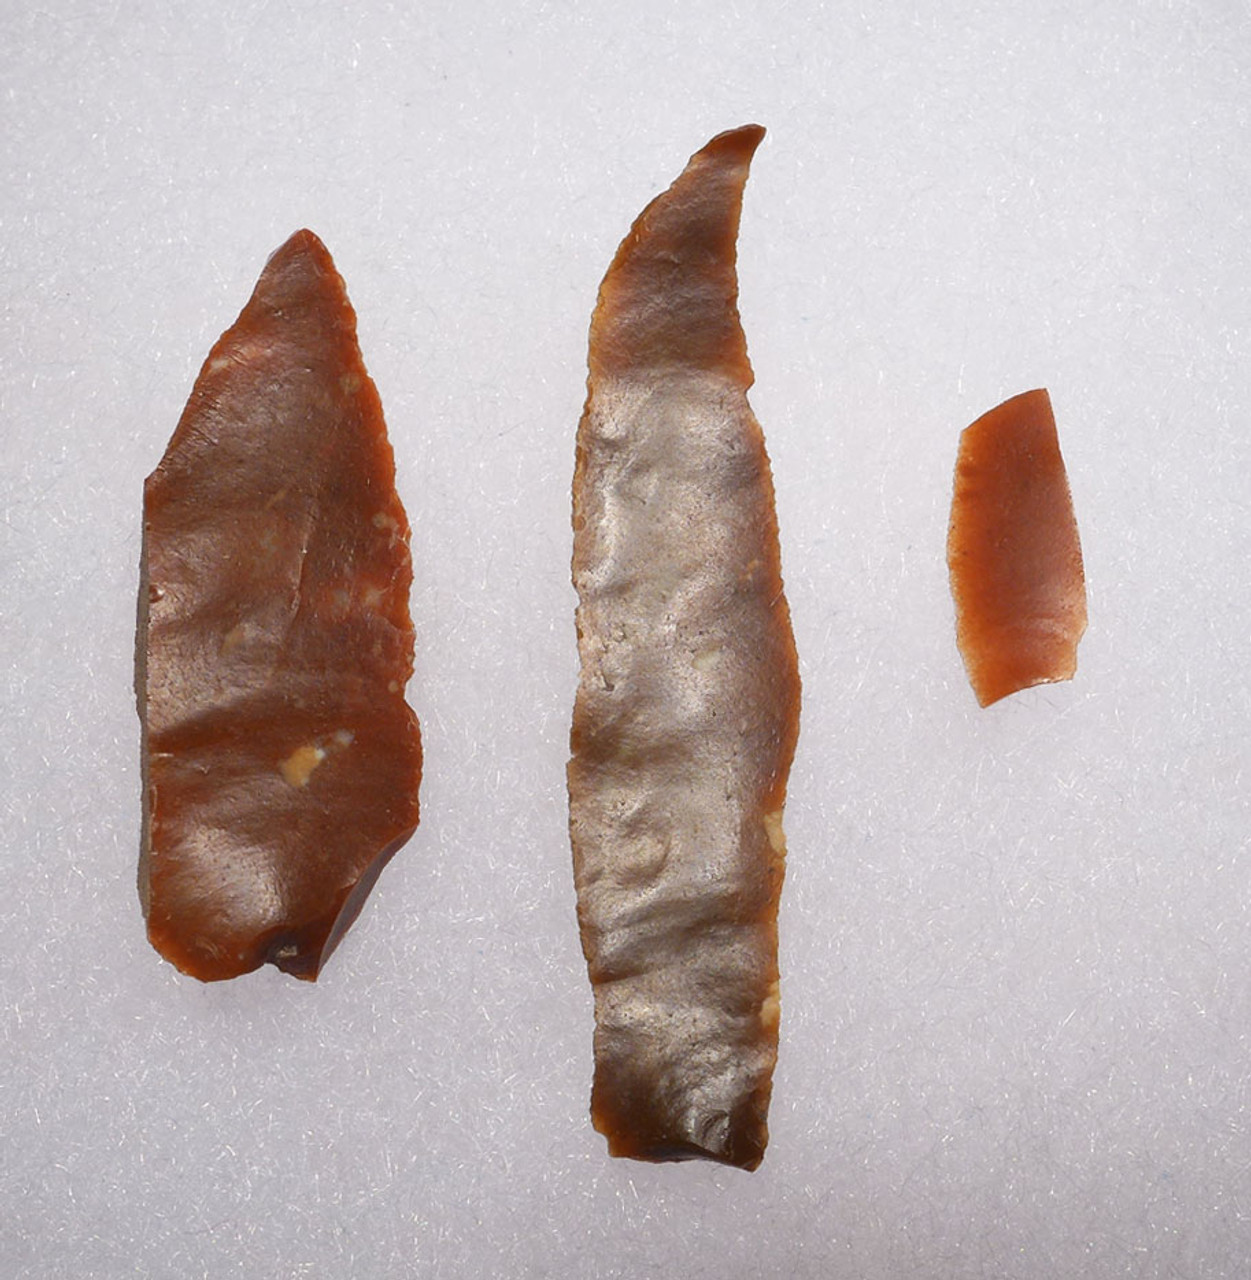 RARE RED RADIOLARITE NEOLITHIC MICROBLADE FLAKE TOOL SET FROM HUNGARY  *N191